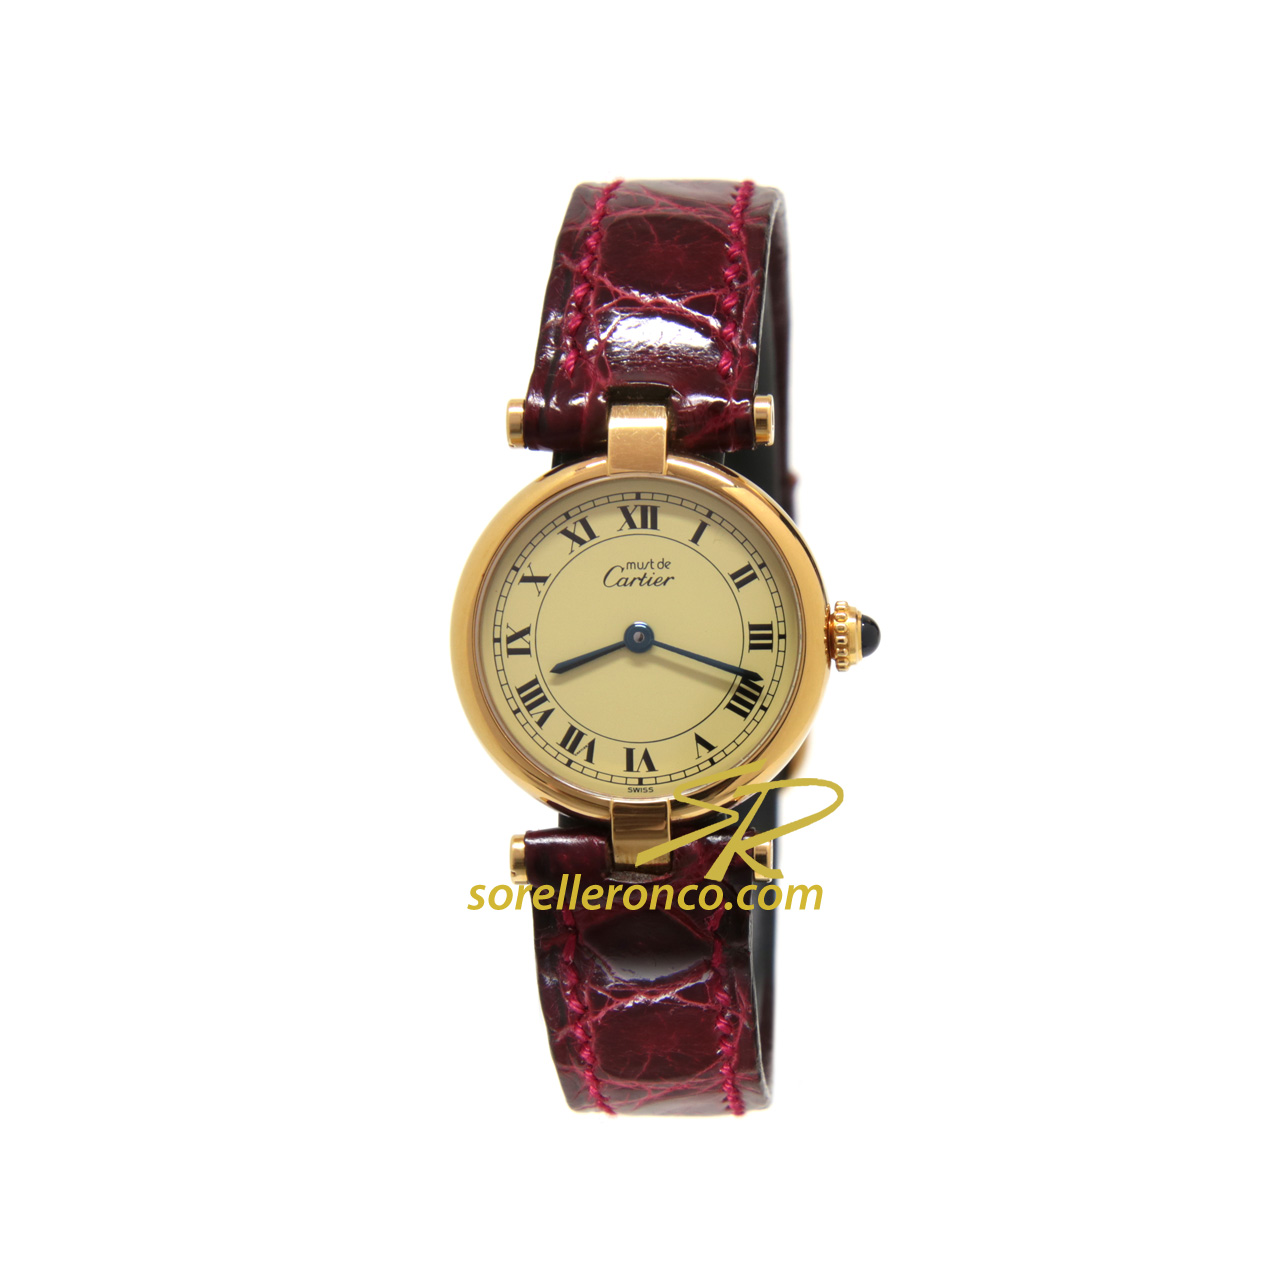 Must de Cartier Quarzo Lady 24mm